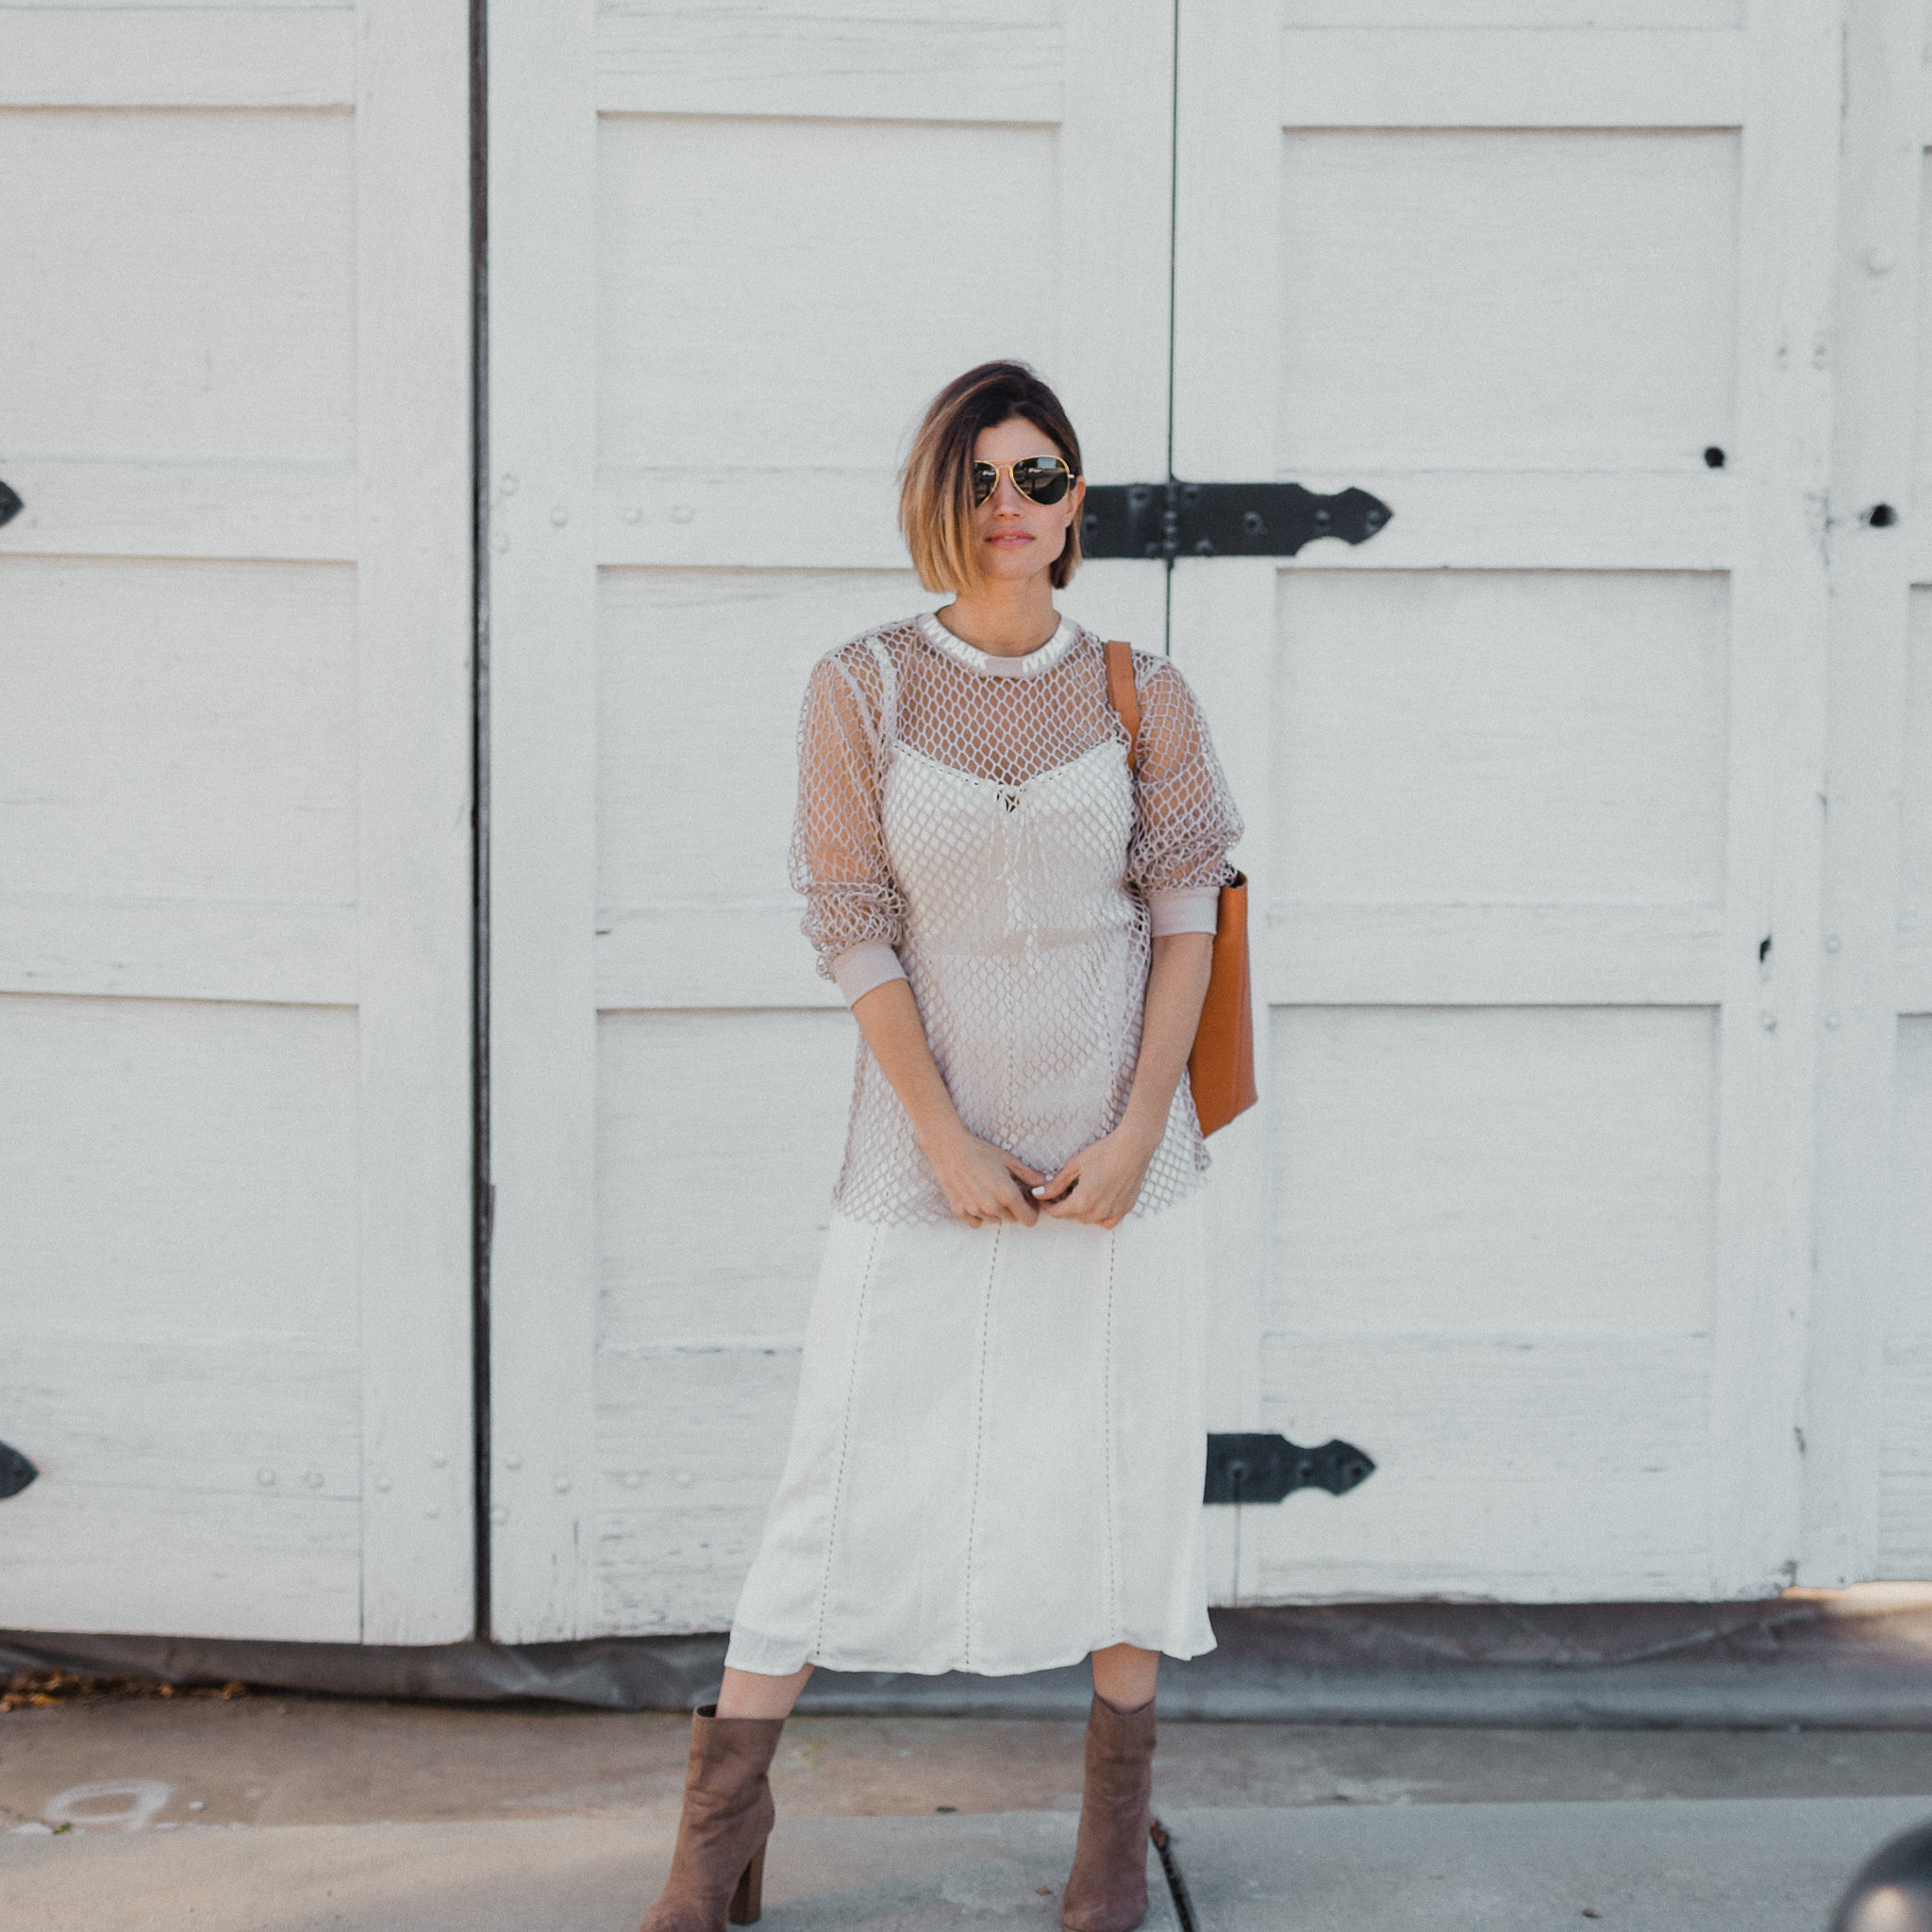 spring-white-dress-outfit-look-fashion-blog.jpg